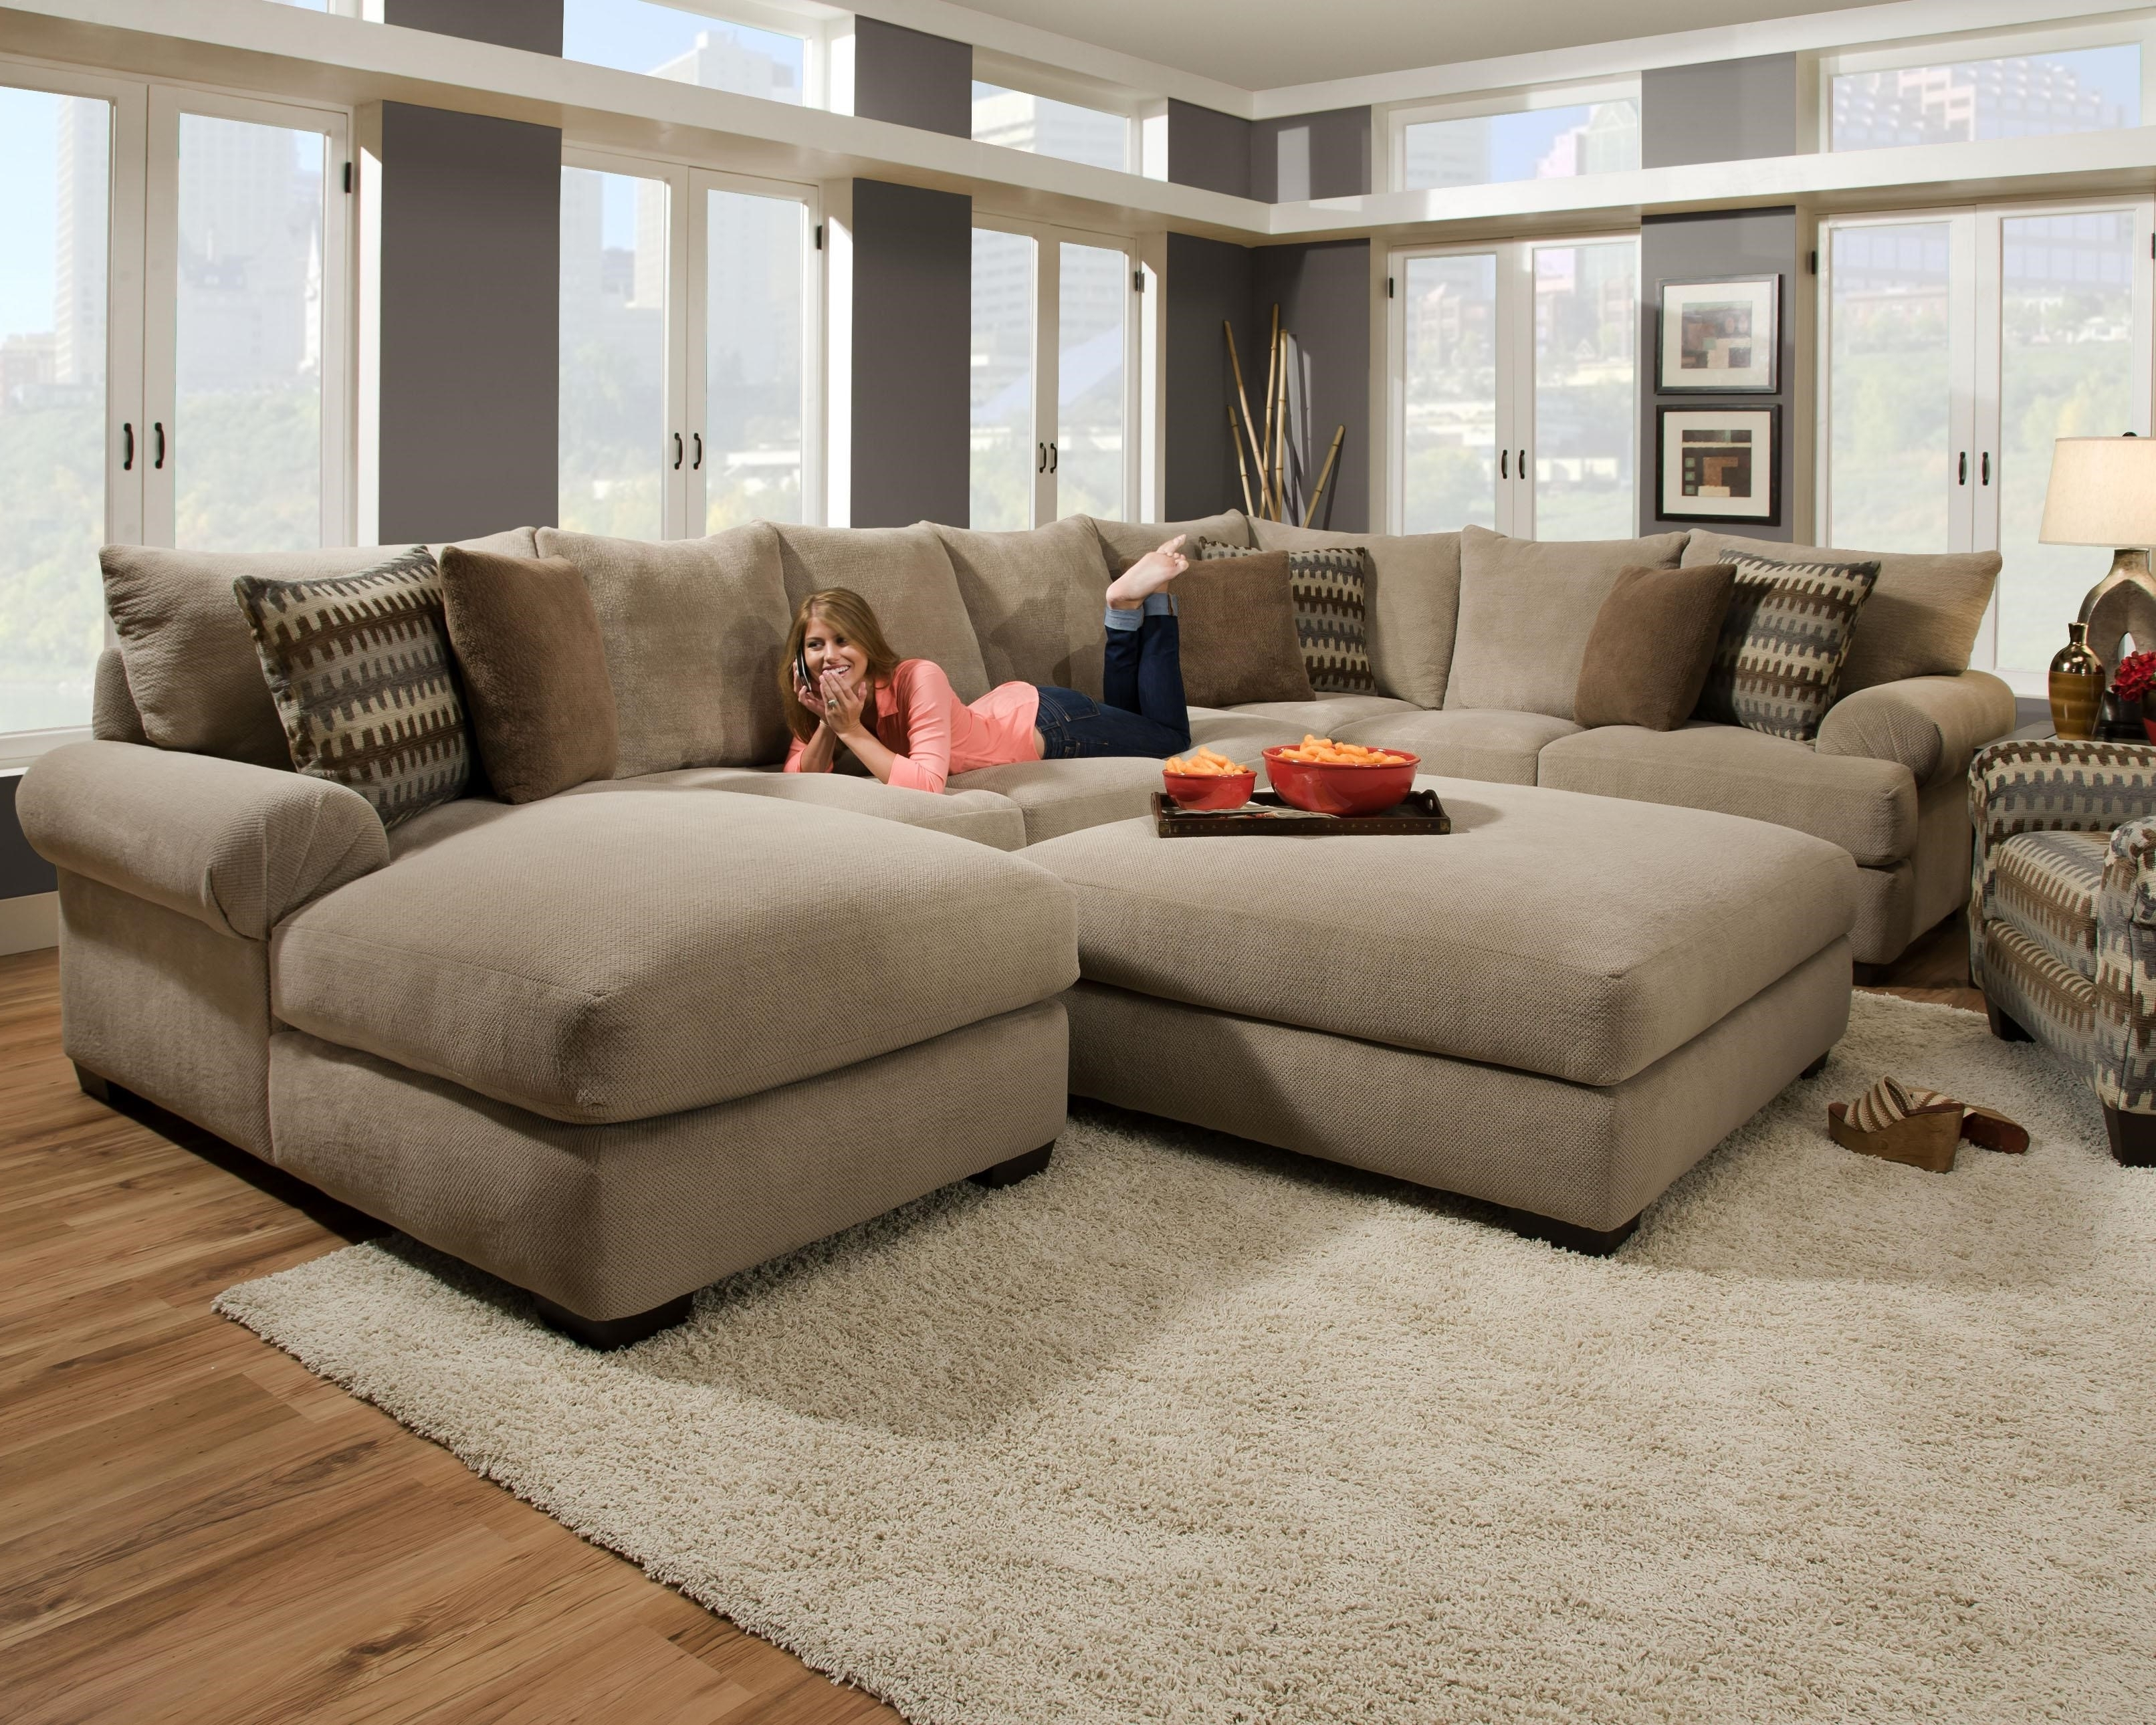 Favorite Oversized Sectional Sofas Cheap – Hotelsbacau Regarding Sectionals With Chaise And Ottoman (View 8 of 20)